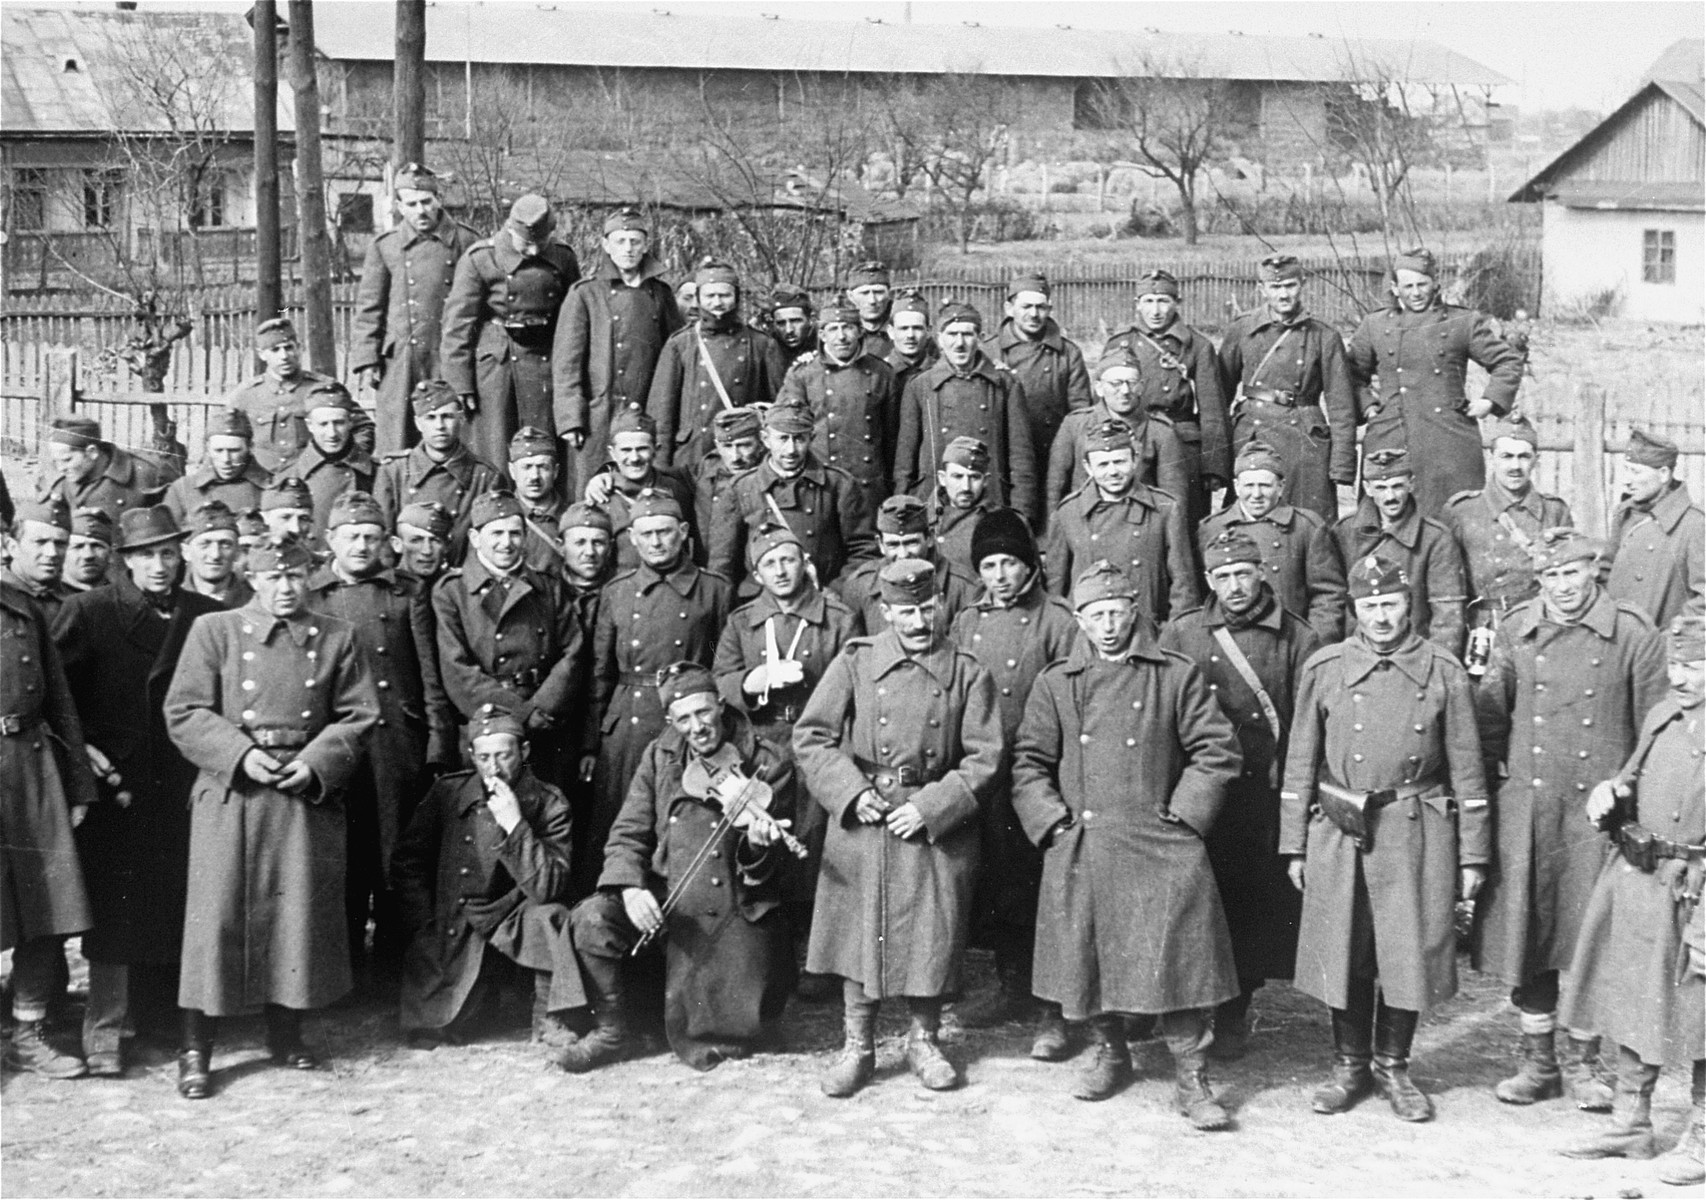 Hungarian-Jewish conscripts in Company 108/57 of the Hungarian Labor Service, after their return to Ungvar from Sianki.